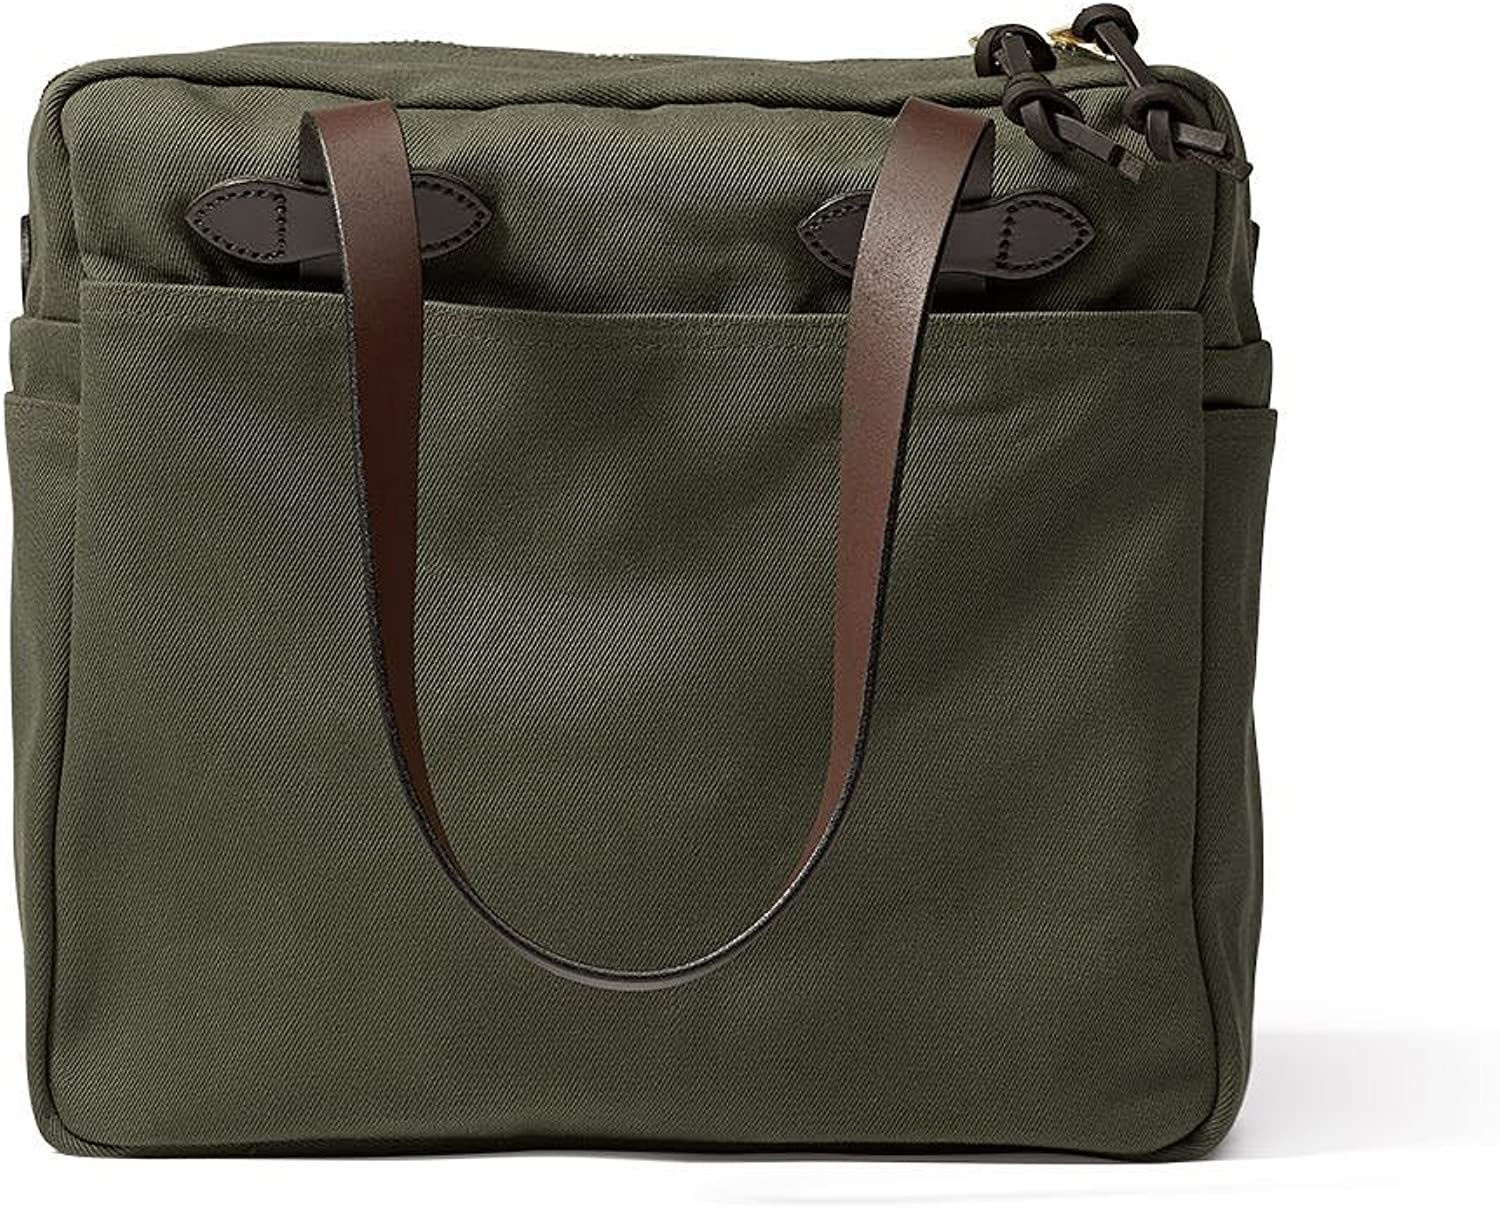 Filson Women s Rugged Twill Tote Bag with Zipper